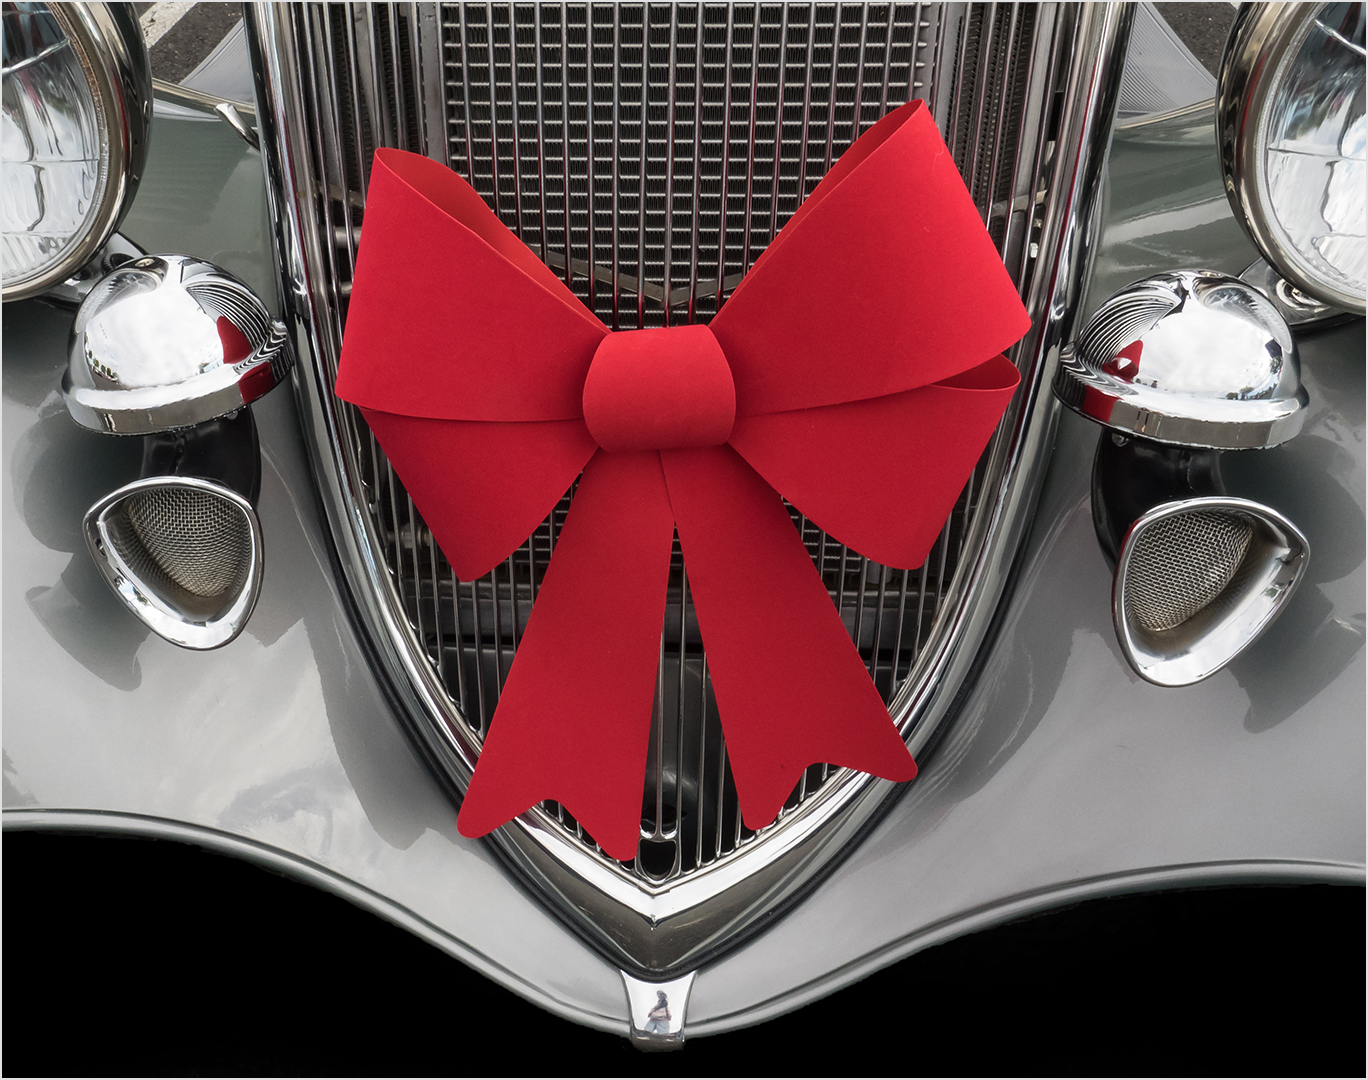 Christmas at Car Show - Color Print (Open) - Peggy Boike